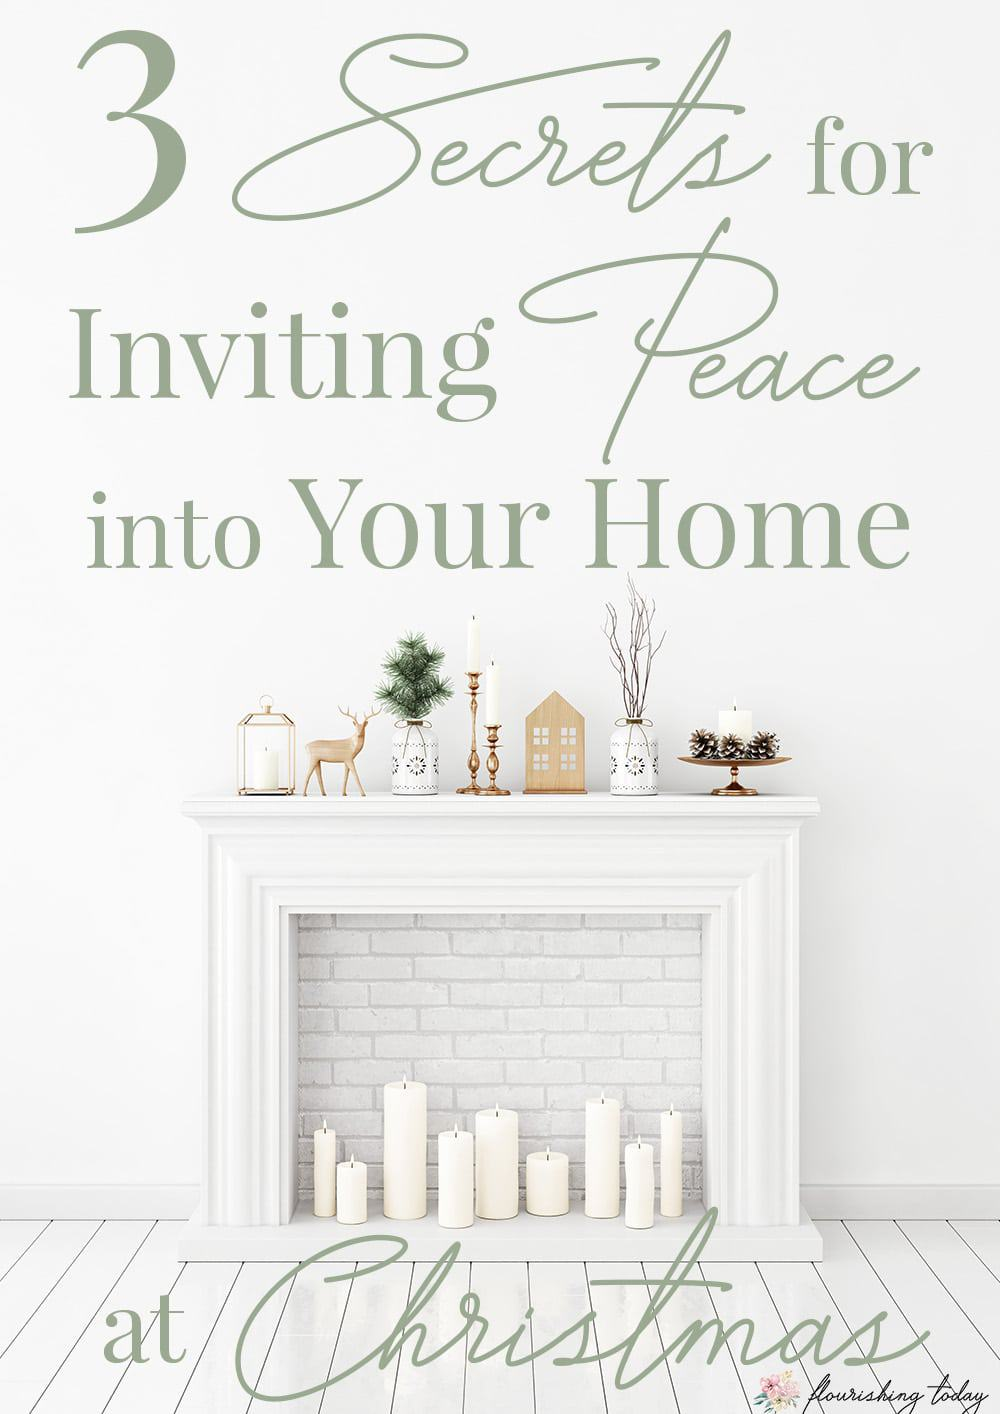 Has your Christmas to do list got you frazzled? Here are 3 secrets to inviting peace into your home at Christmas this year. #Christmas #peace #peaceful